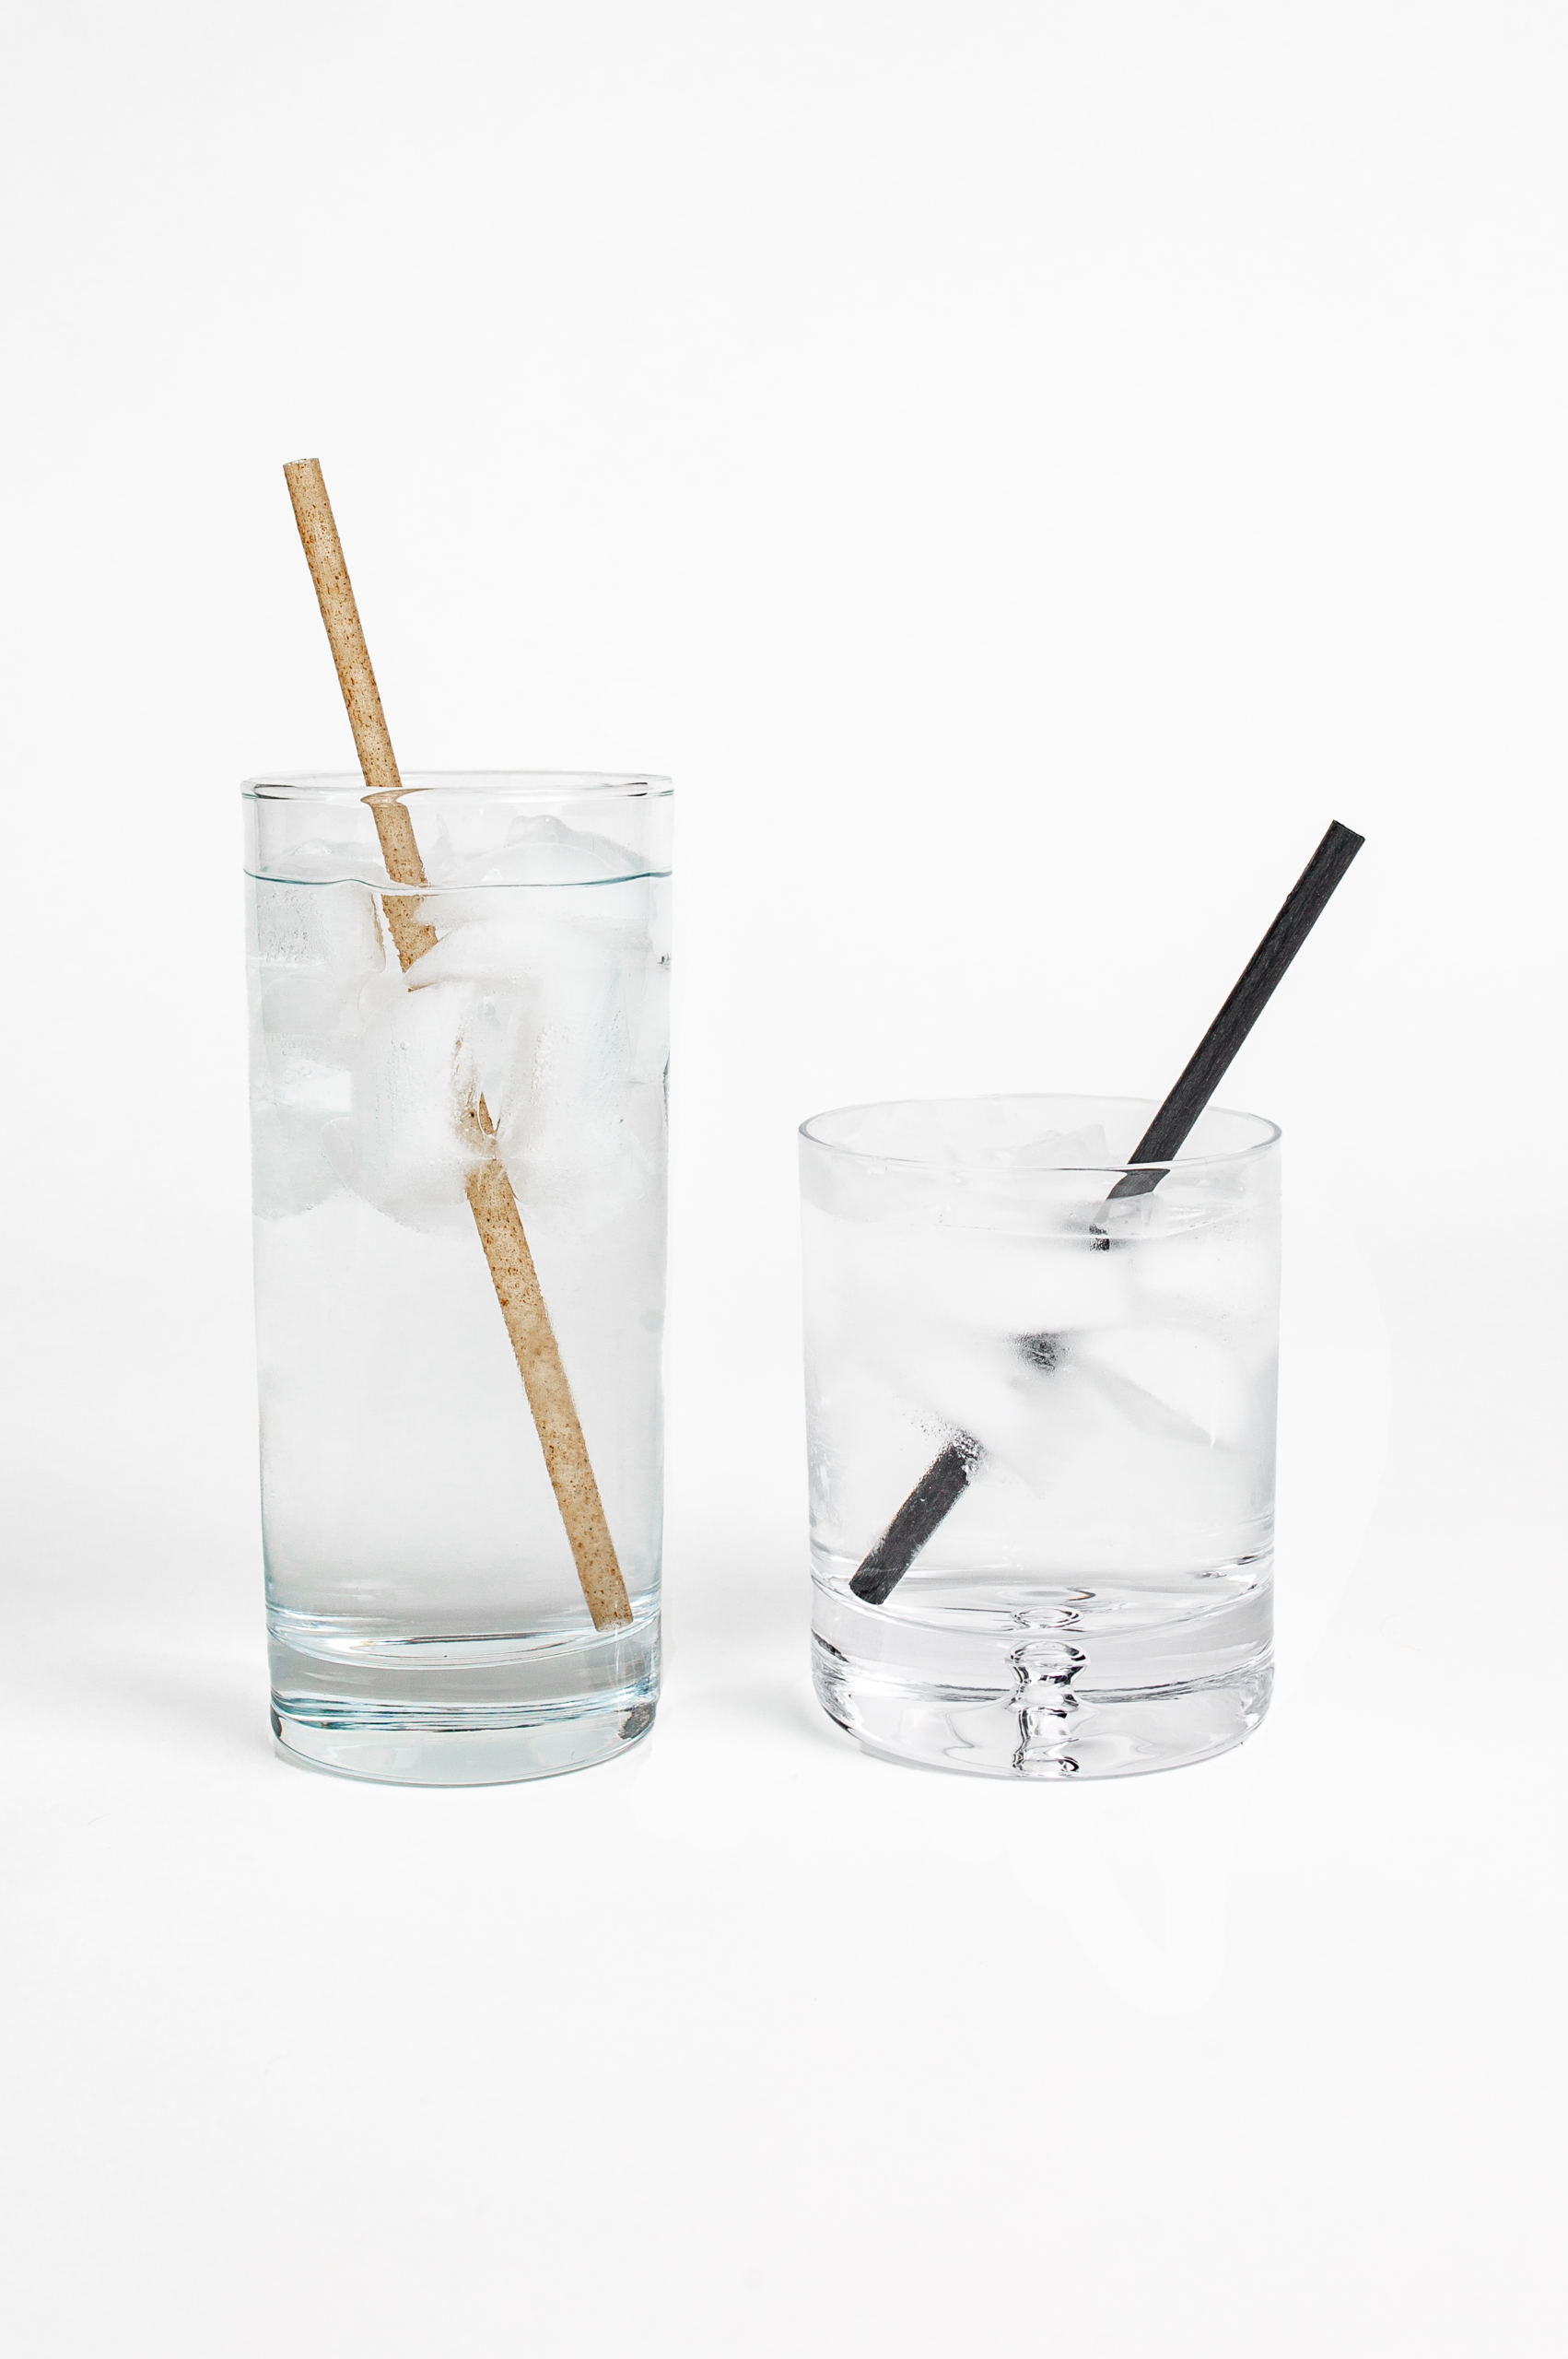 Agave Straws in Water